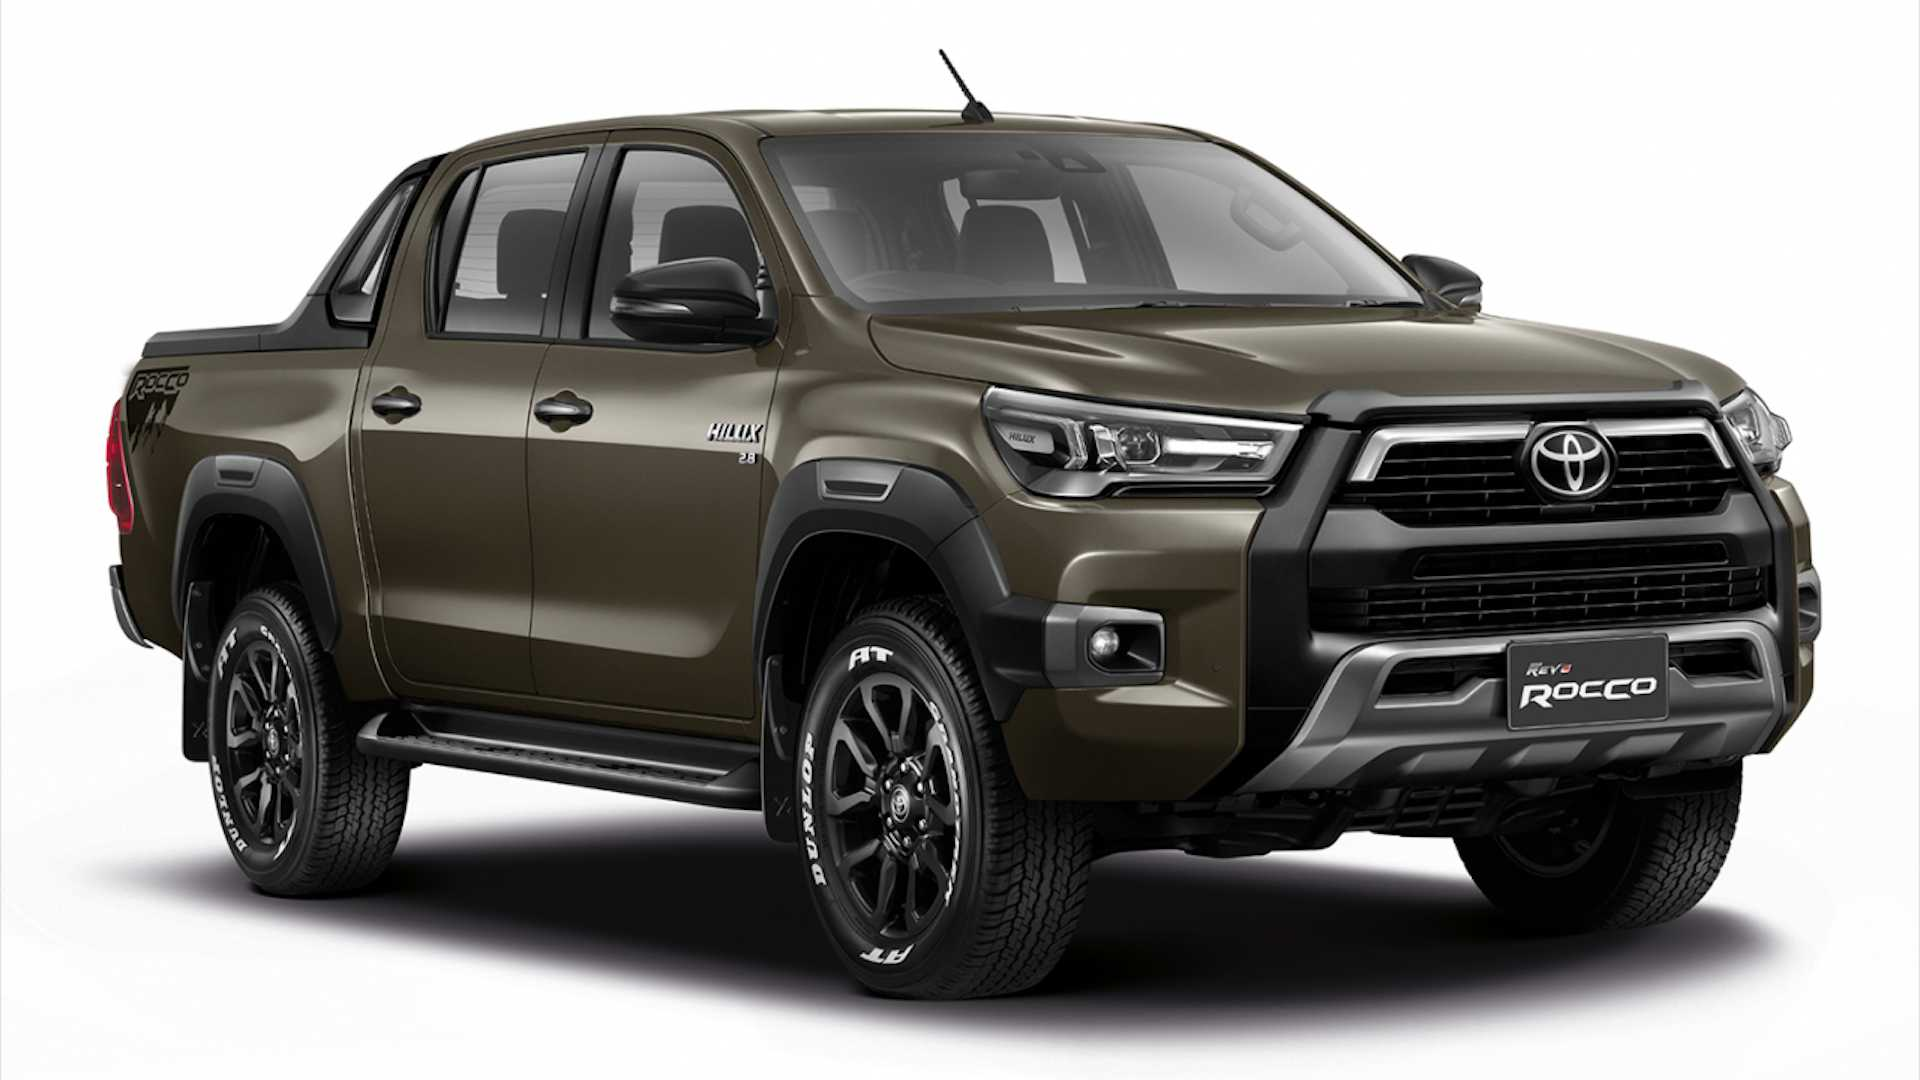 2021-toyota-hilux-launched-in-thailand-2.jpg